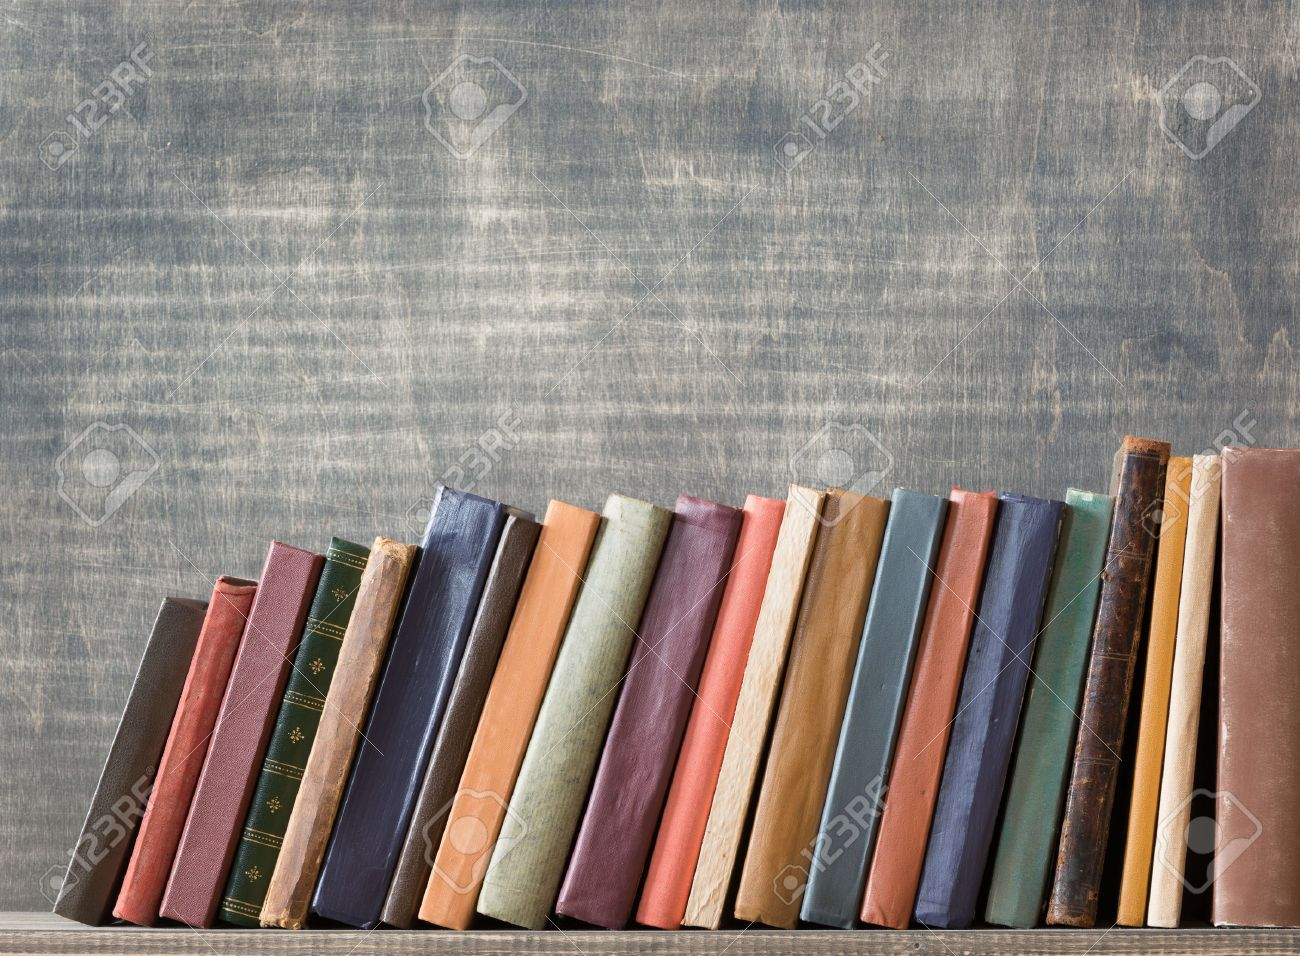 Books Shelf old books on a wooden shelf. stock photo, picture and royalty free